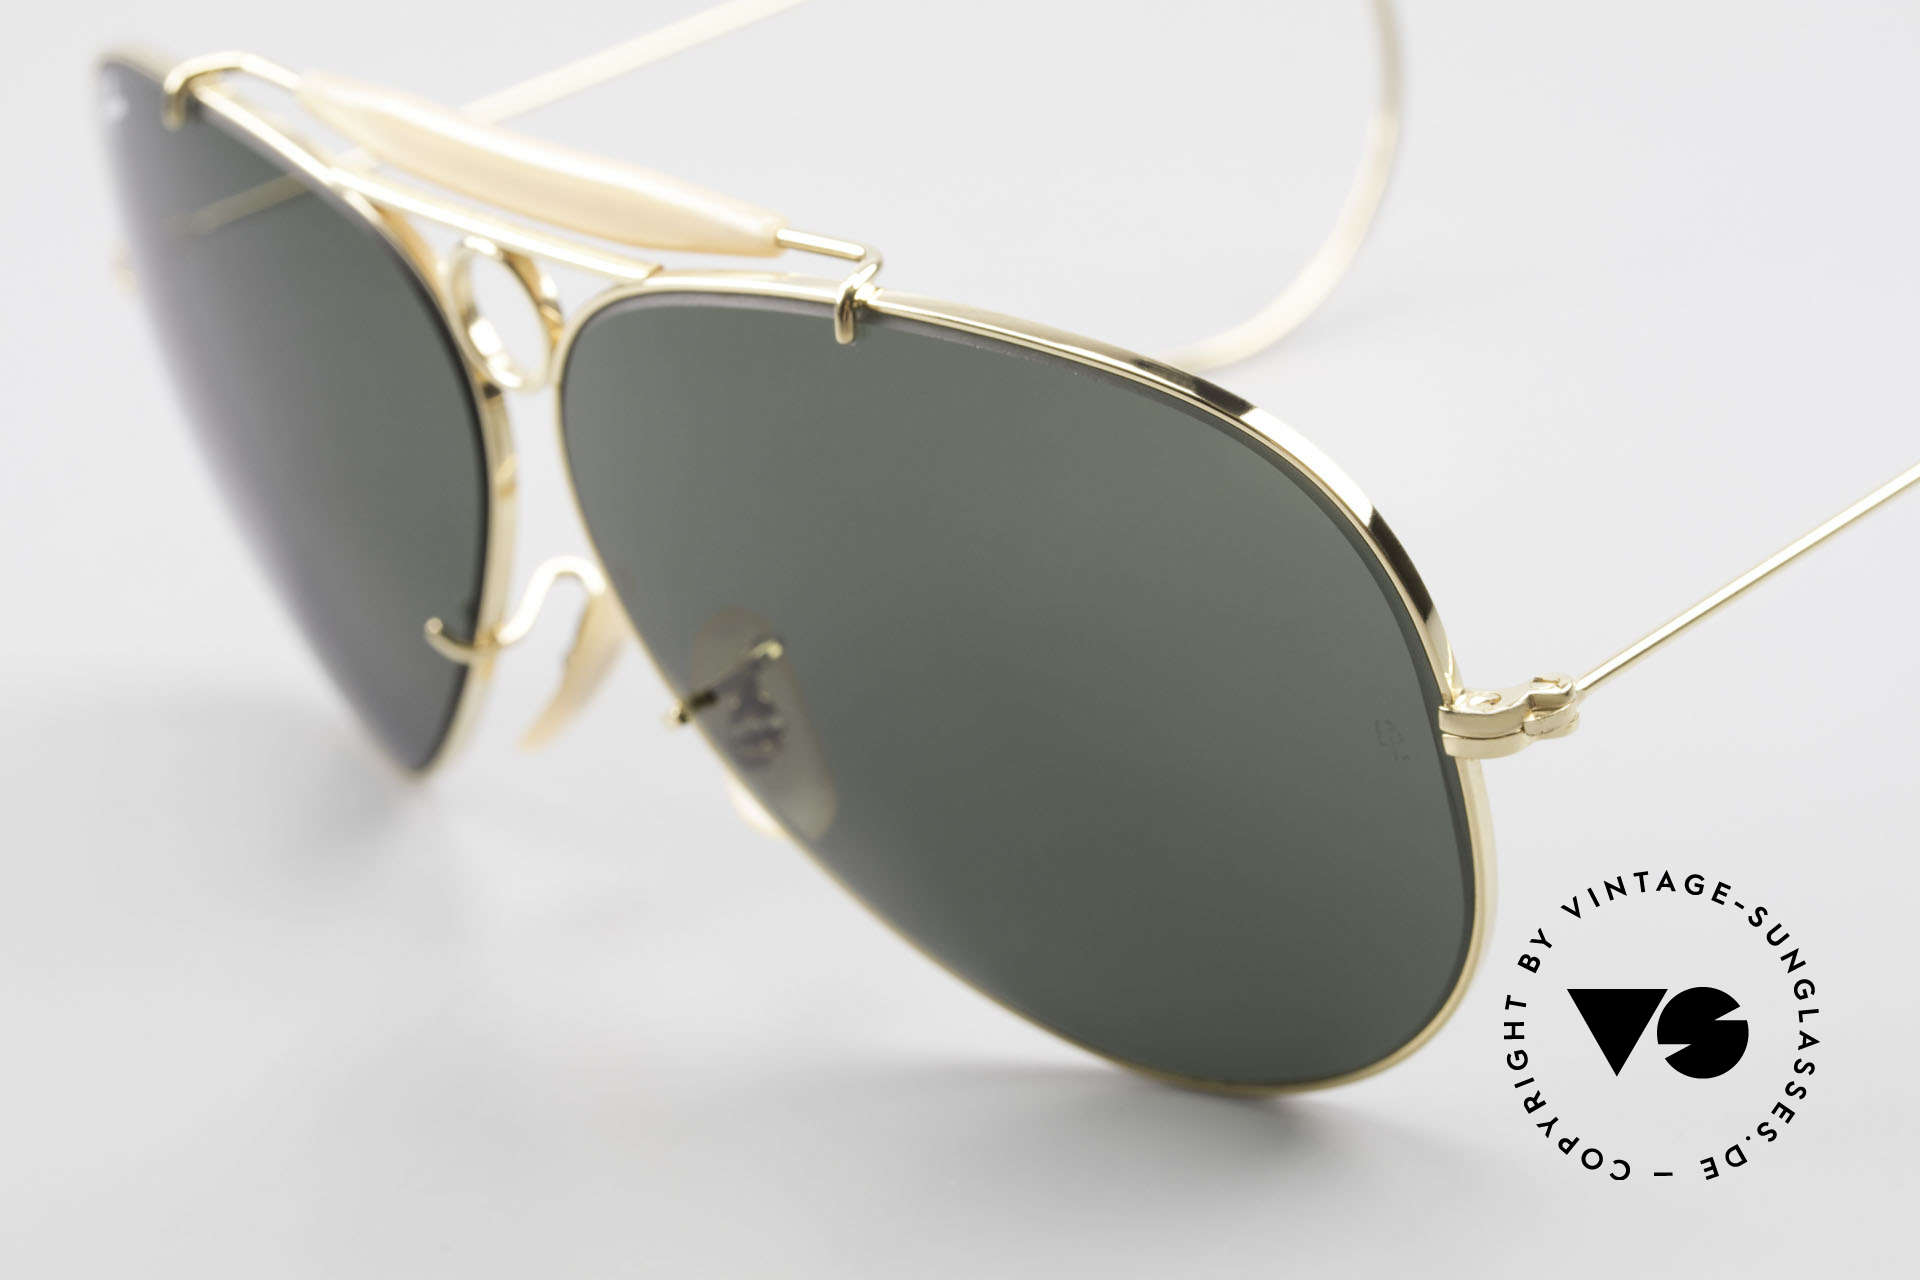 Ray Ban Shooter Sport Sunglass Classic Made in USA, scratch-resistant G15 B&L mineral lenses; 100% UV, Made for Men